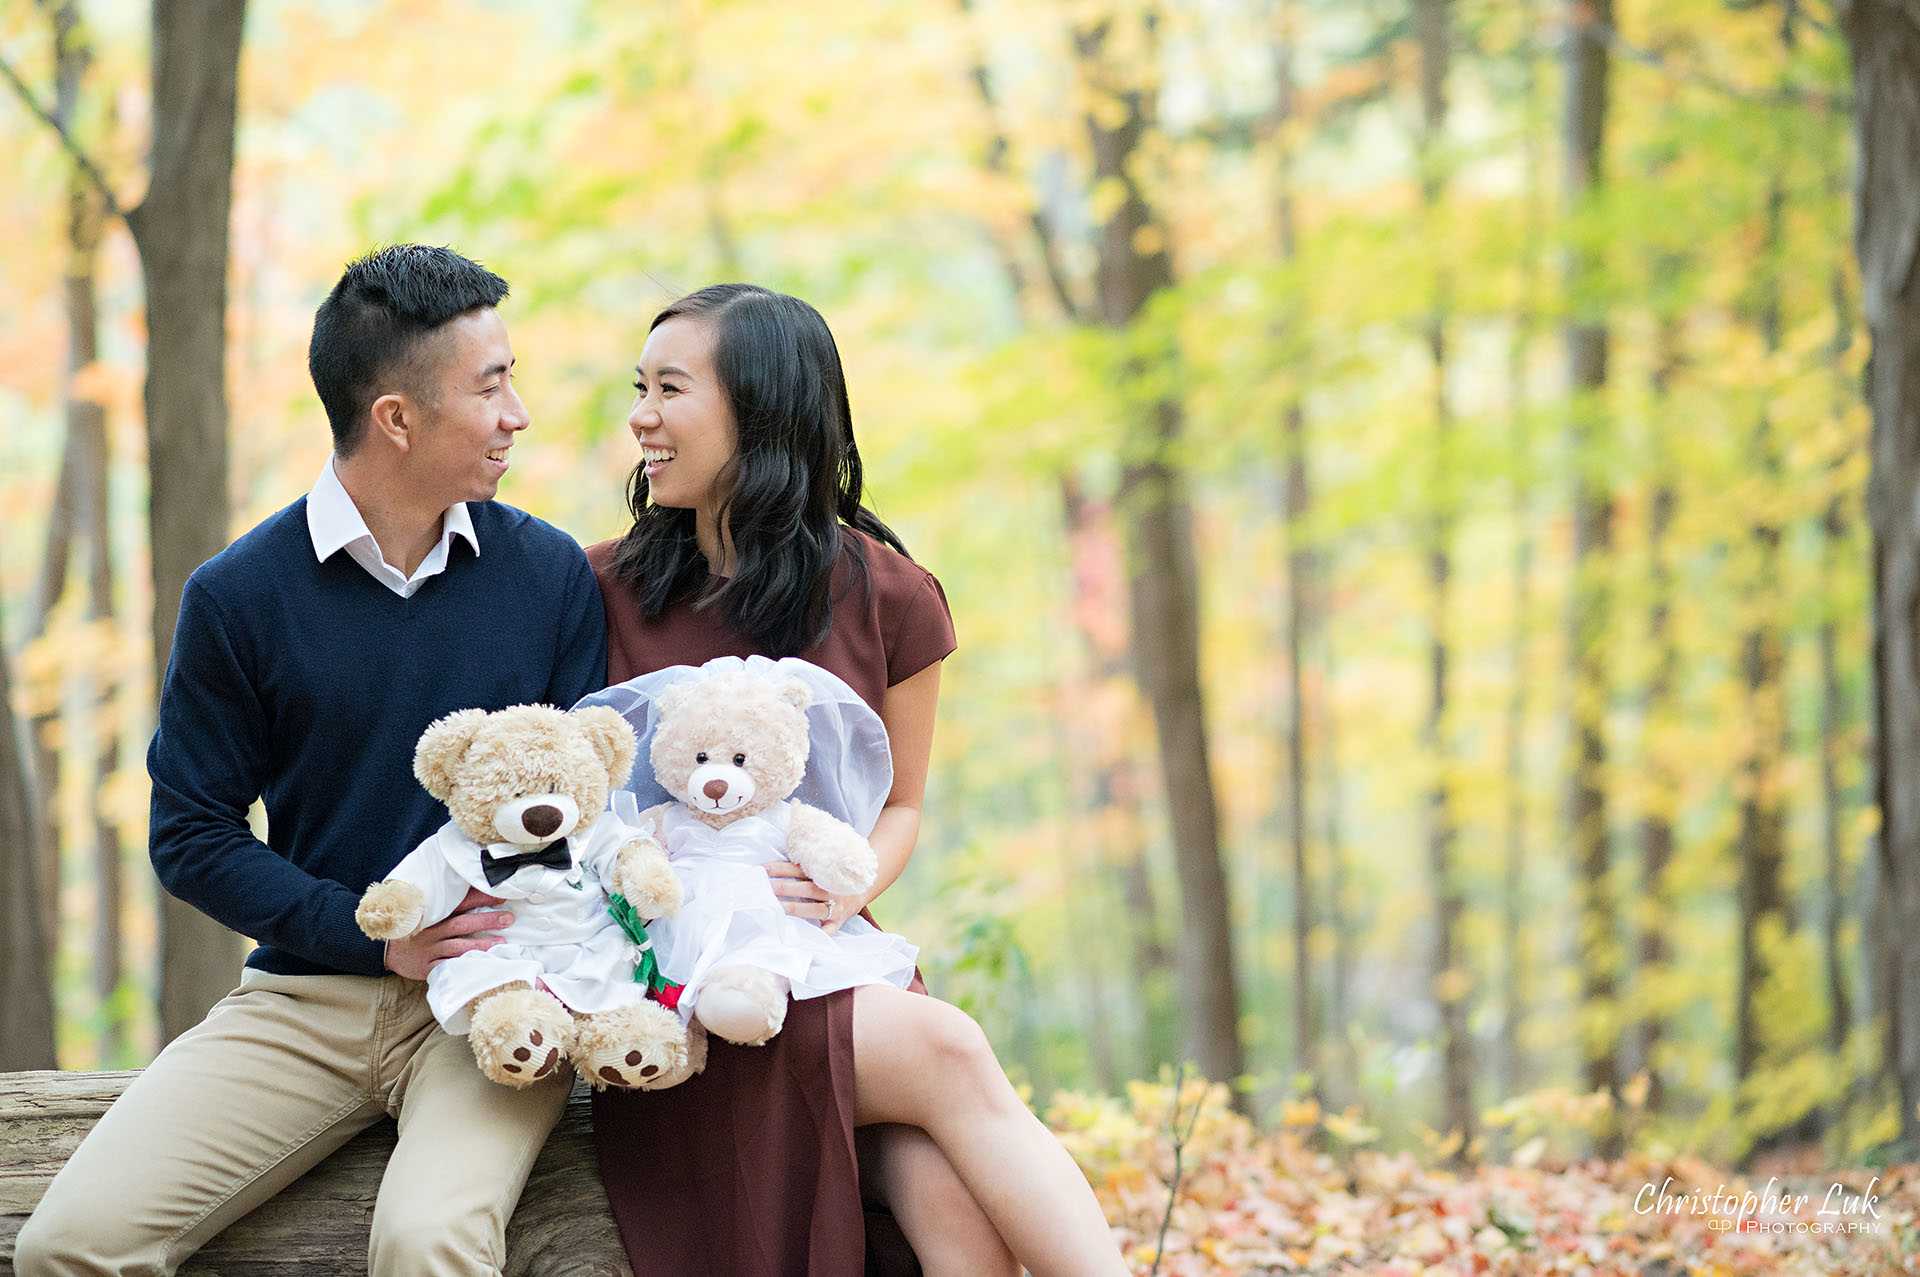 Christopher Luk Toronto Wedding Engagement Session Photographer Autumn Fall Leaves Natural Candid Photojournalistic Bride Groom Hiking Trail Stuffed Animal WongFu Productions Spencer Bear Trees Log Smiling Happy Together Landscape